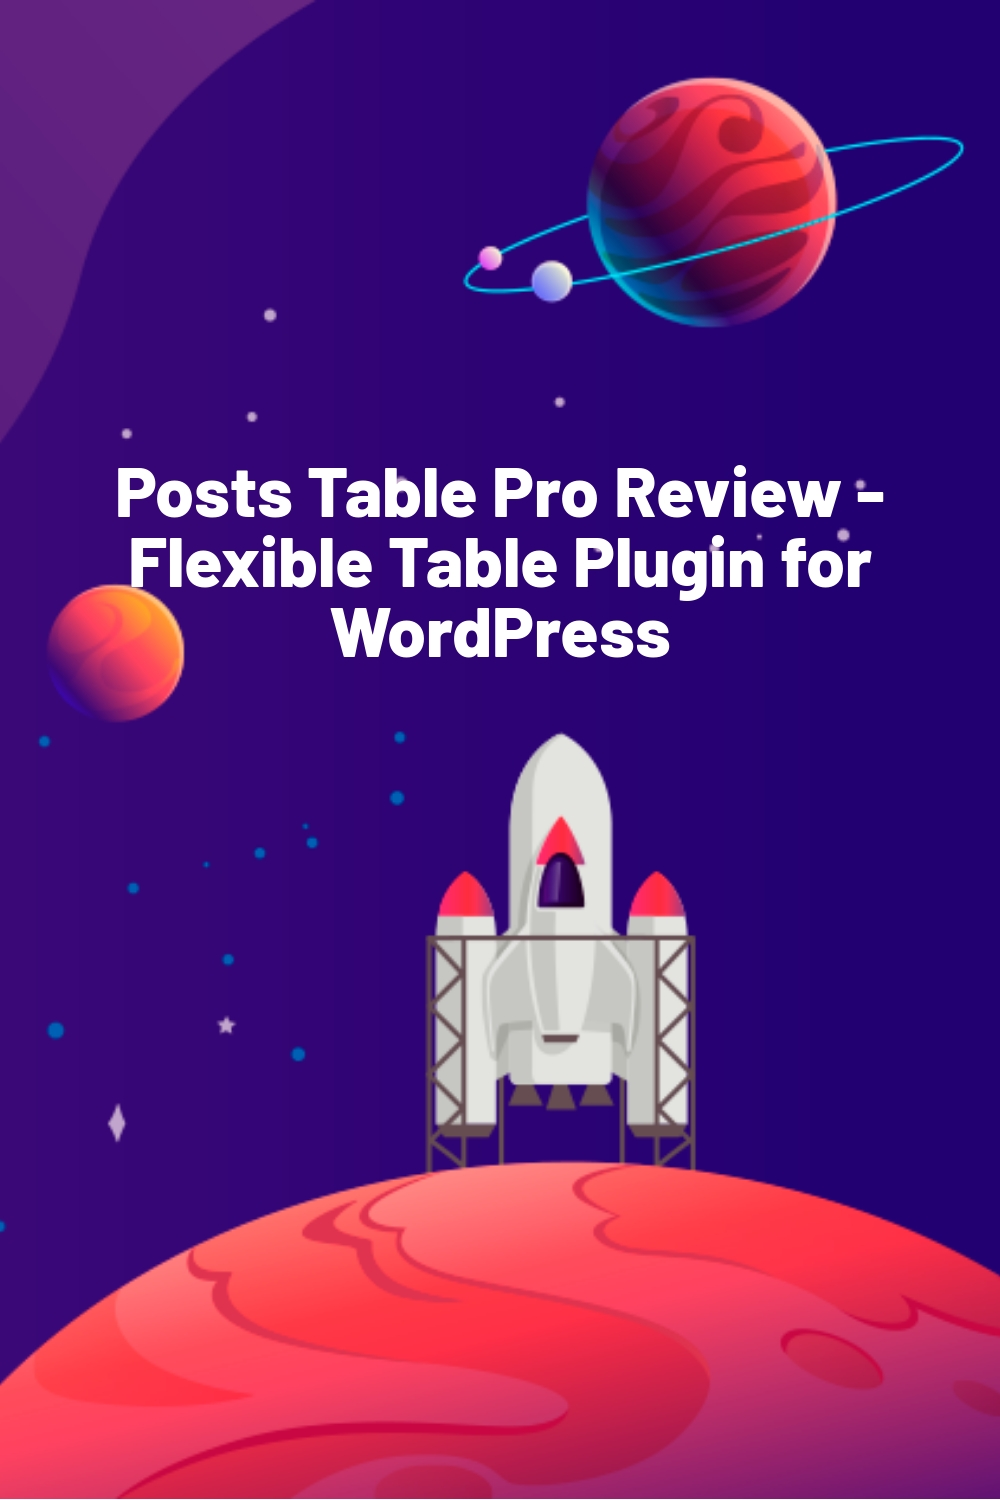 Posts Table Pro Review – Flexible Table Plugin for WordPress